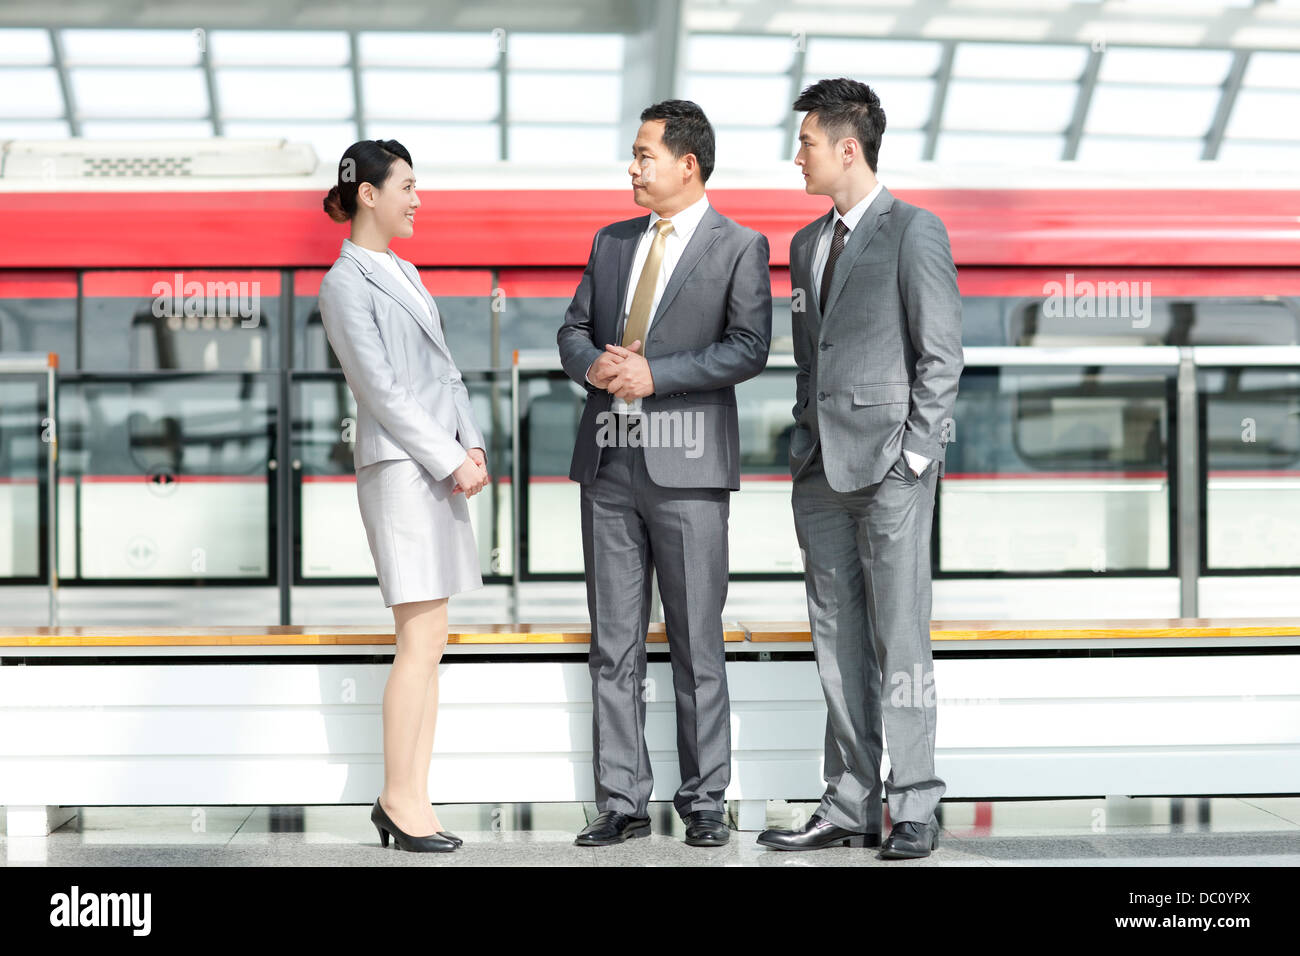 Business persons talking at subway station Stock Photo